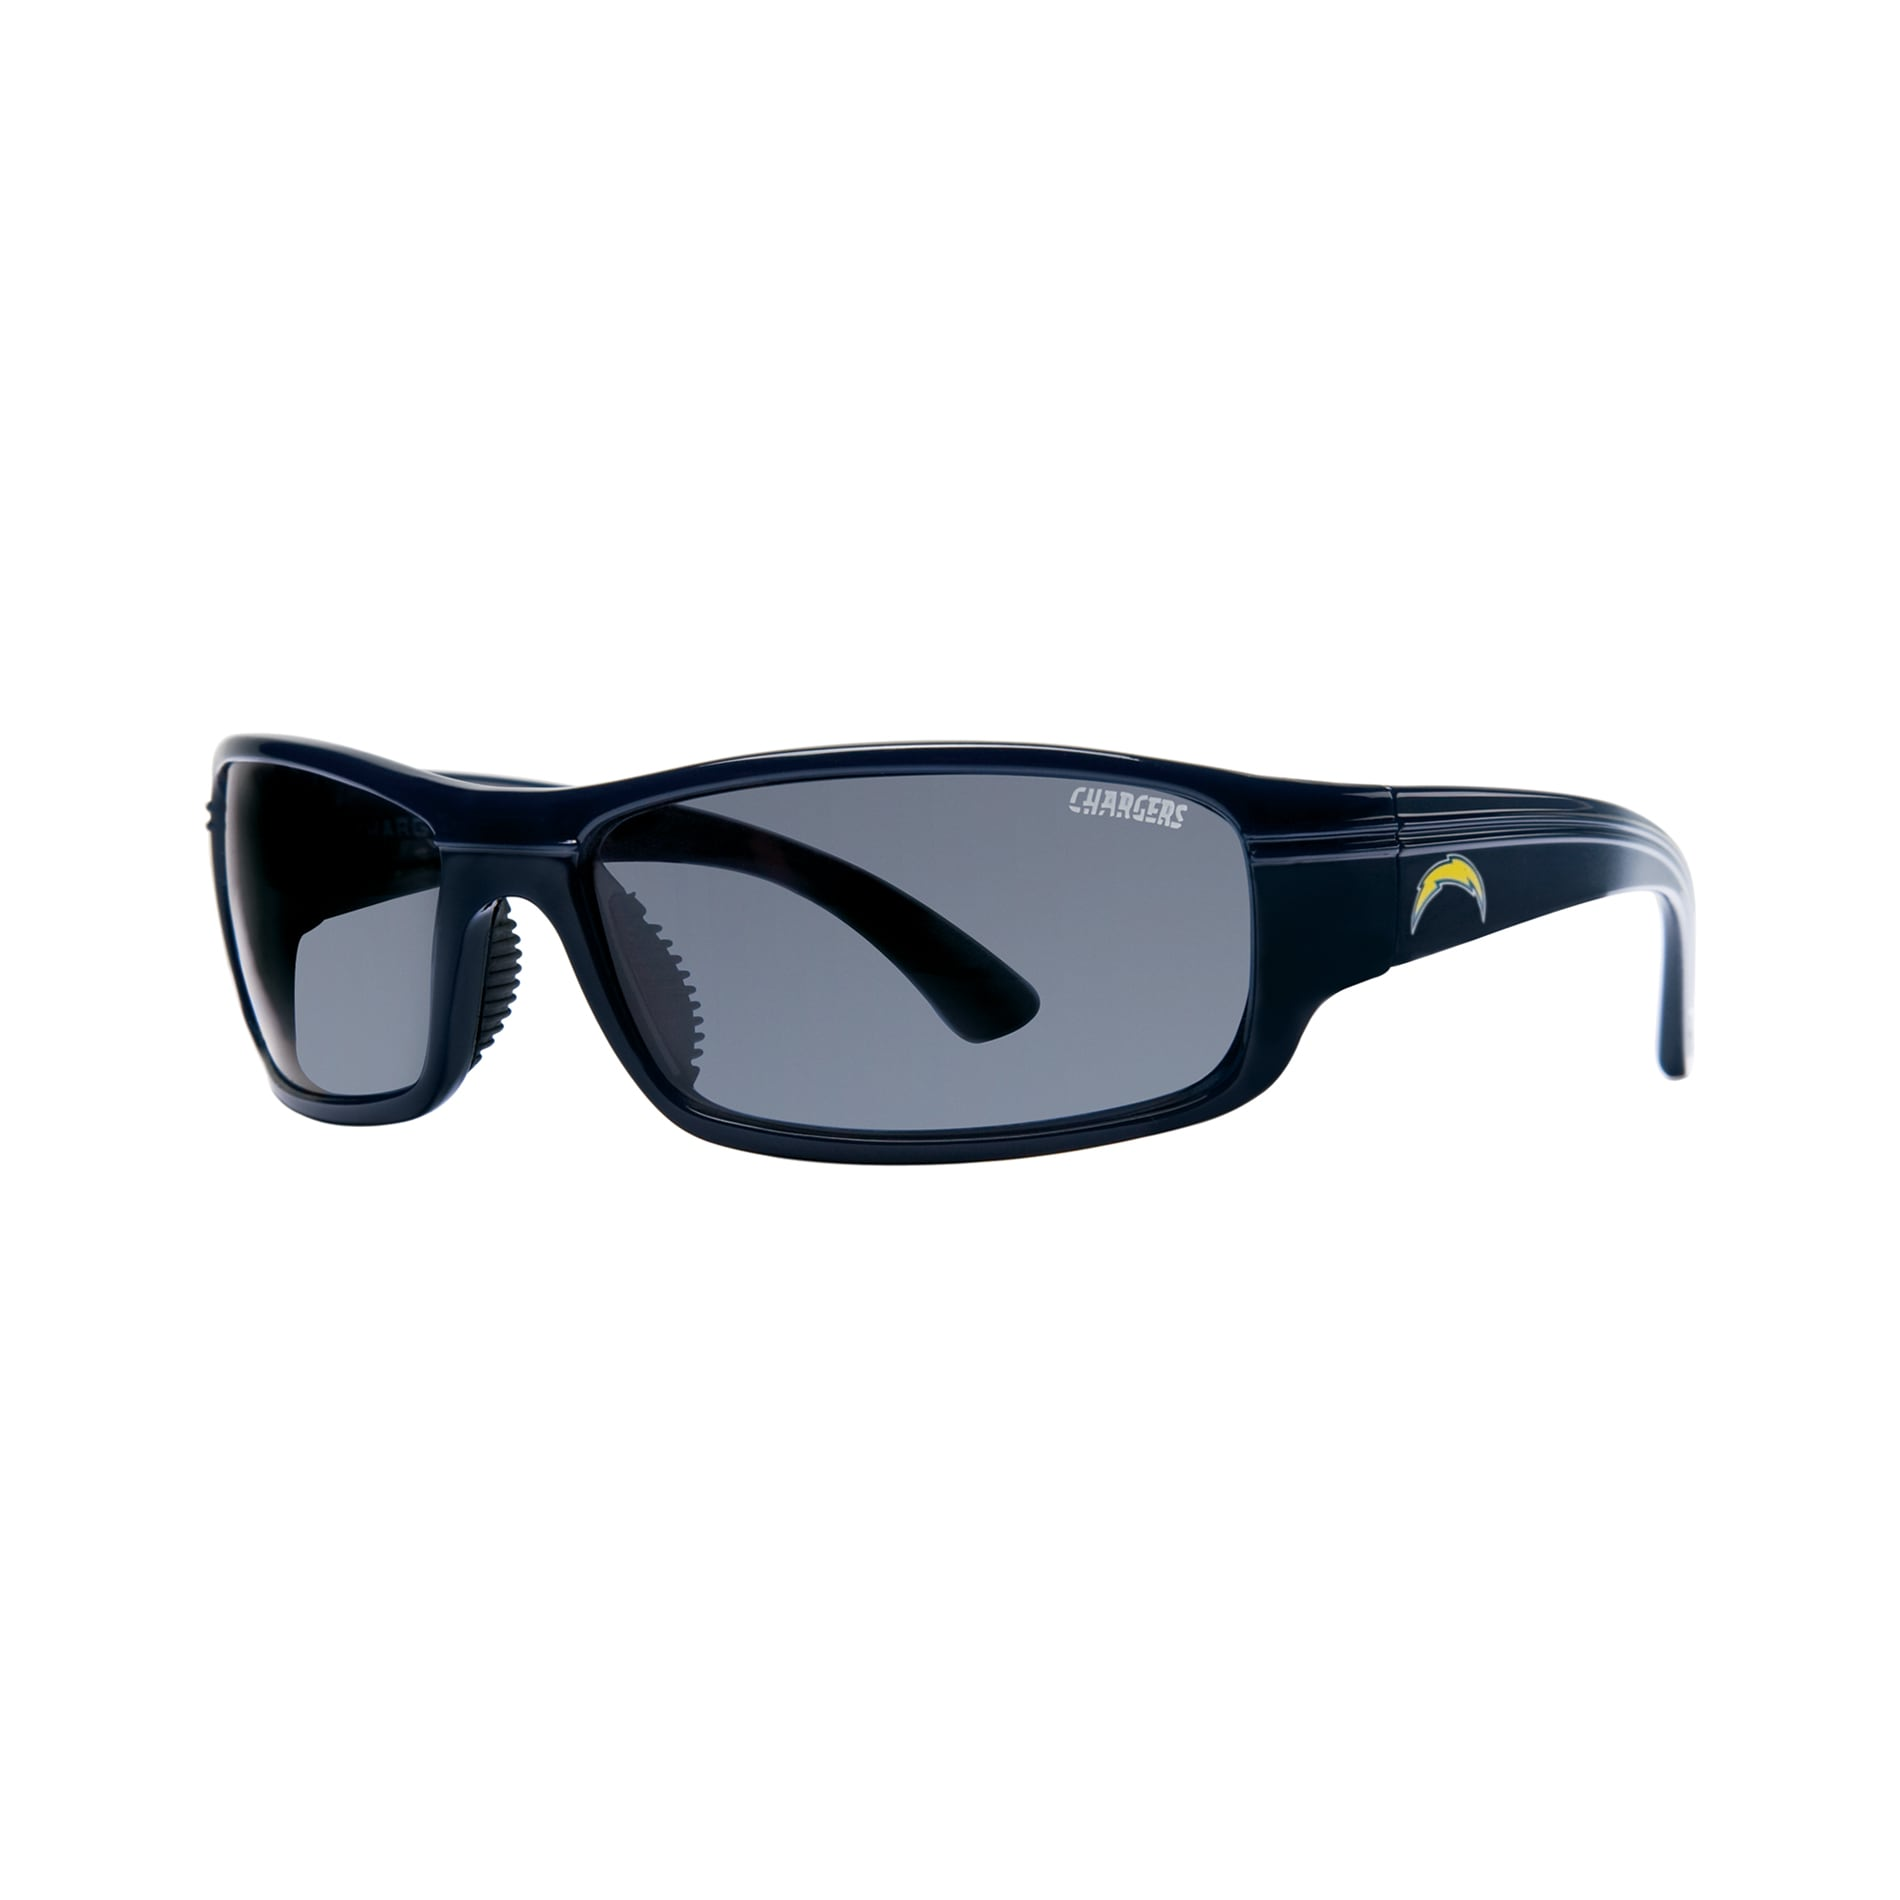 Modo San Diego Chargers Men's 'Block 2' Sunglasses - Thumbnail 0